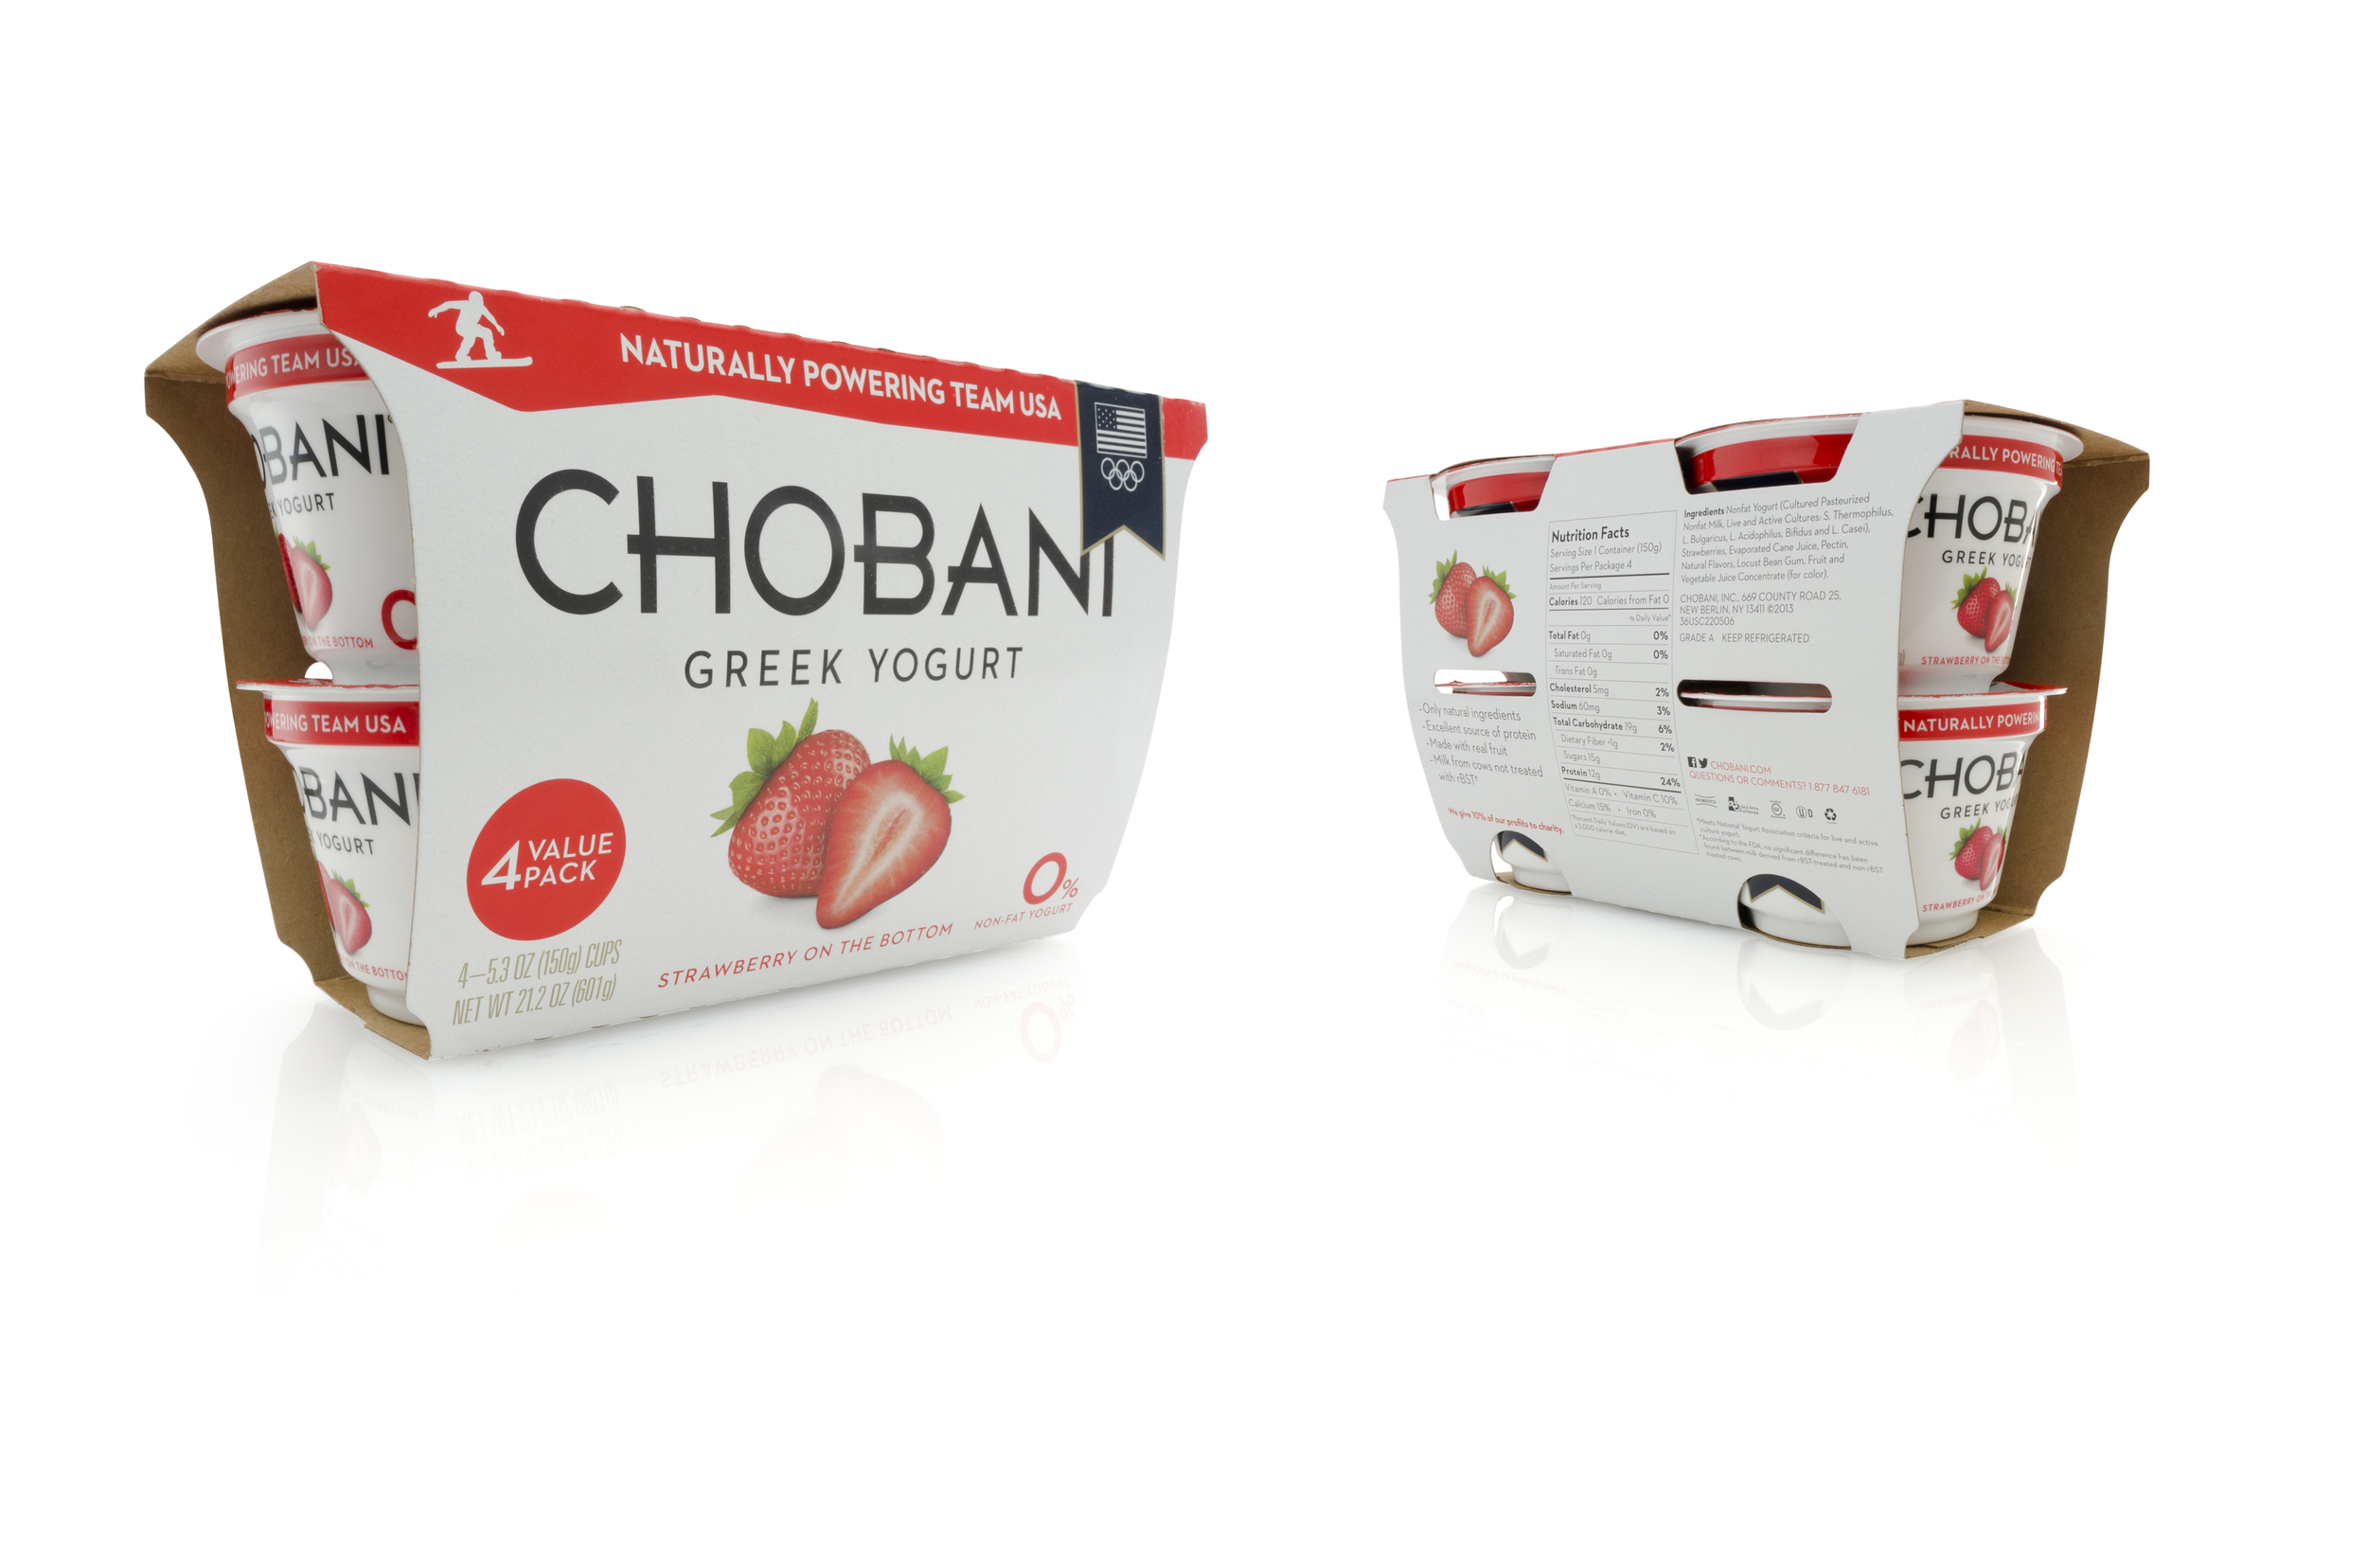 Chobani Structural Packaging Wrap